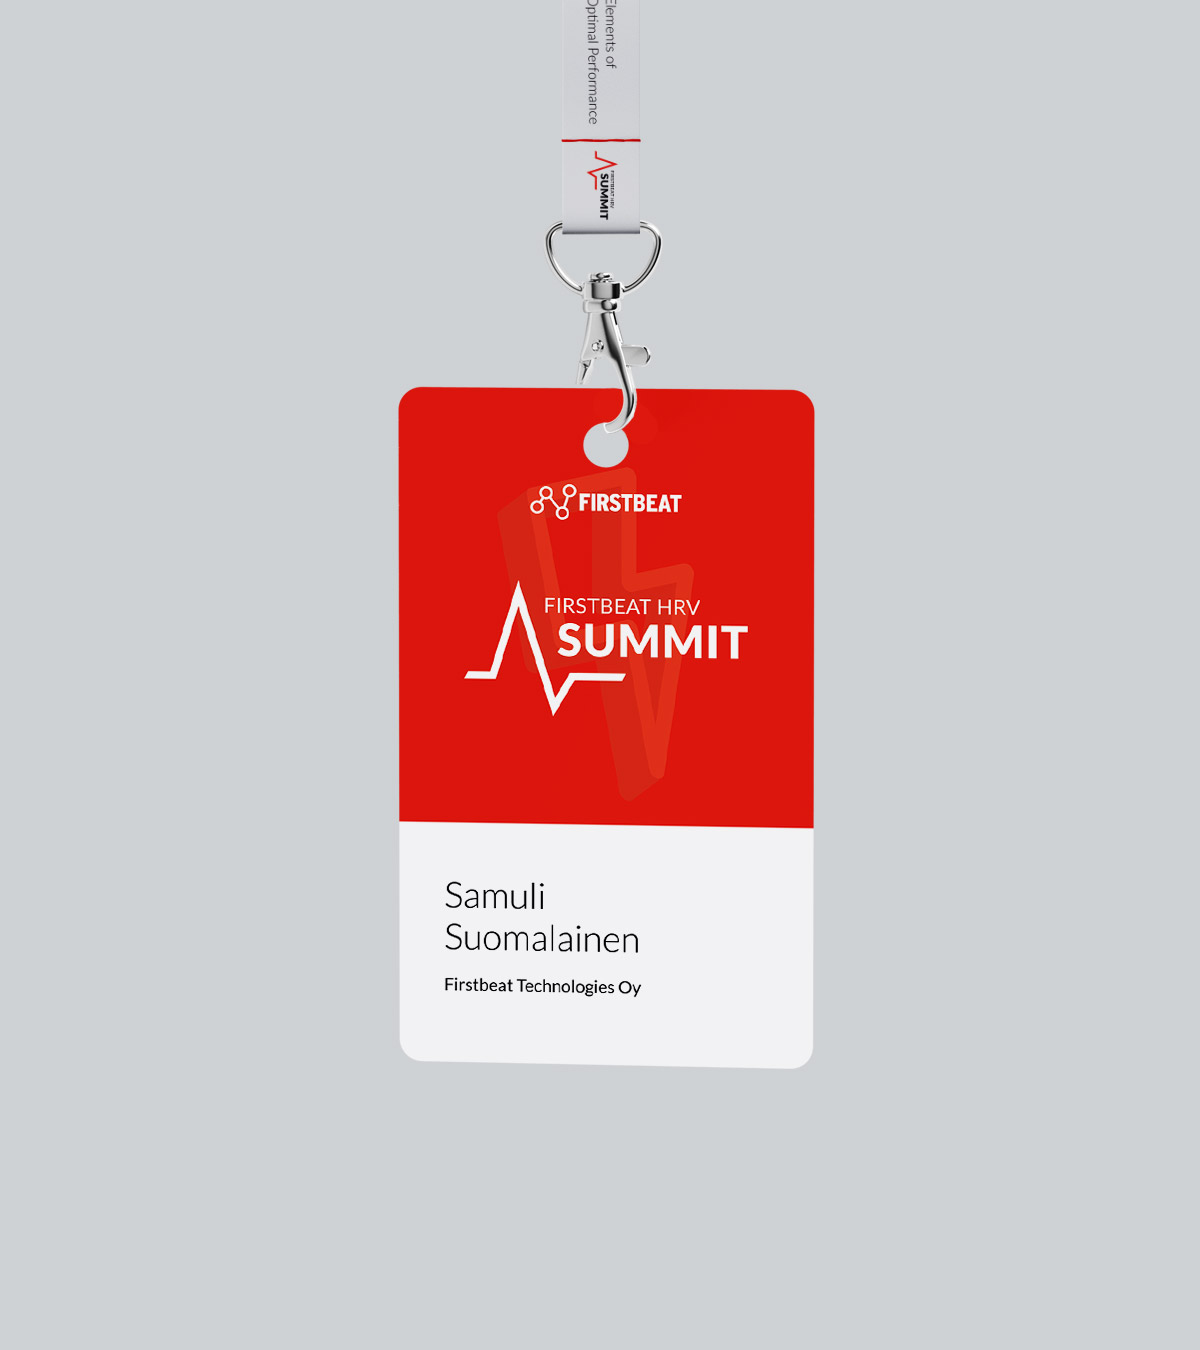 Firstbeat HRV Summit project image